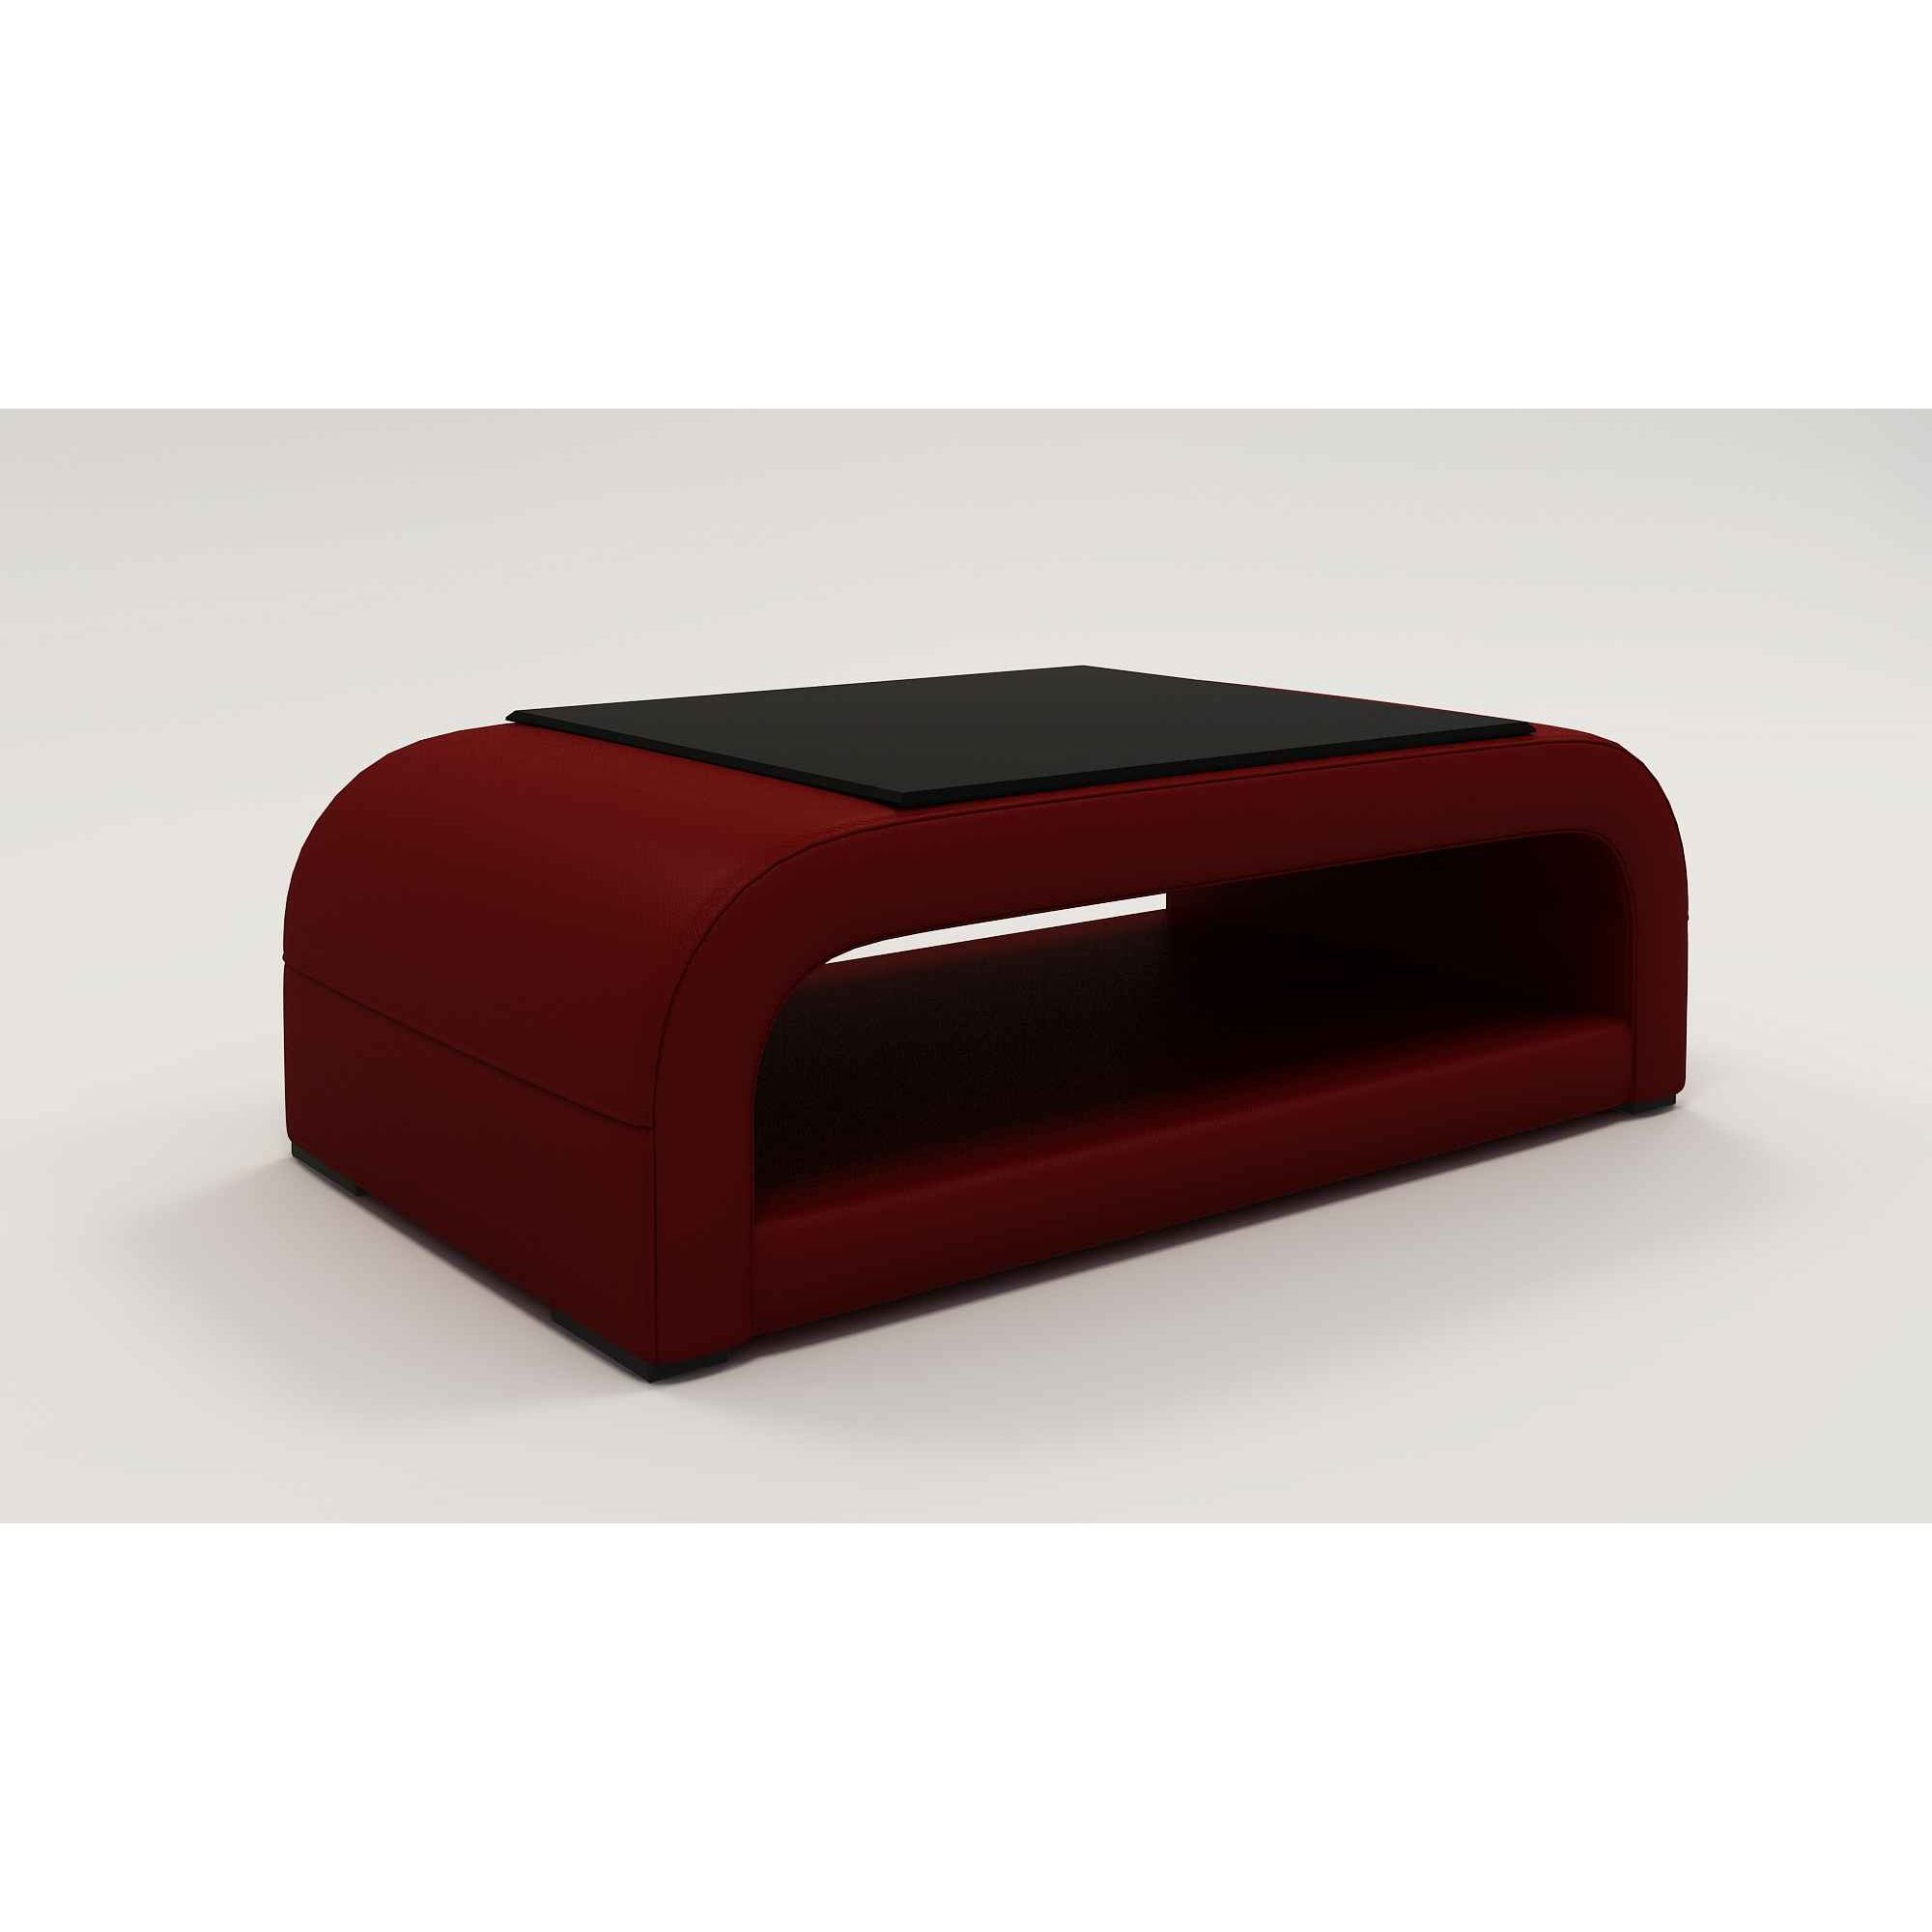 deco in paris table basse design rouge nelly nelly rouge. Black Bedroom Furniture Sets. Home Design Ideas